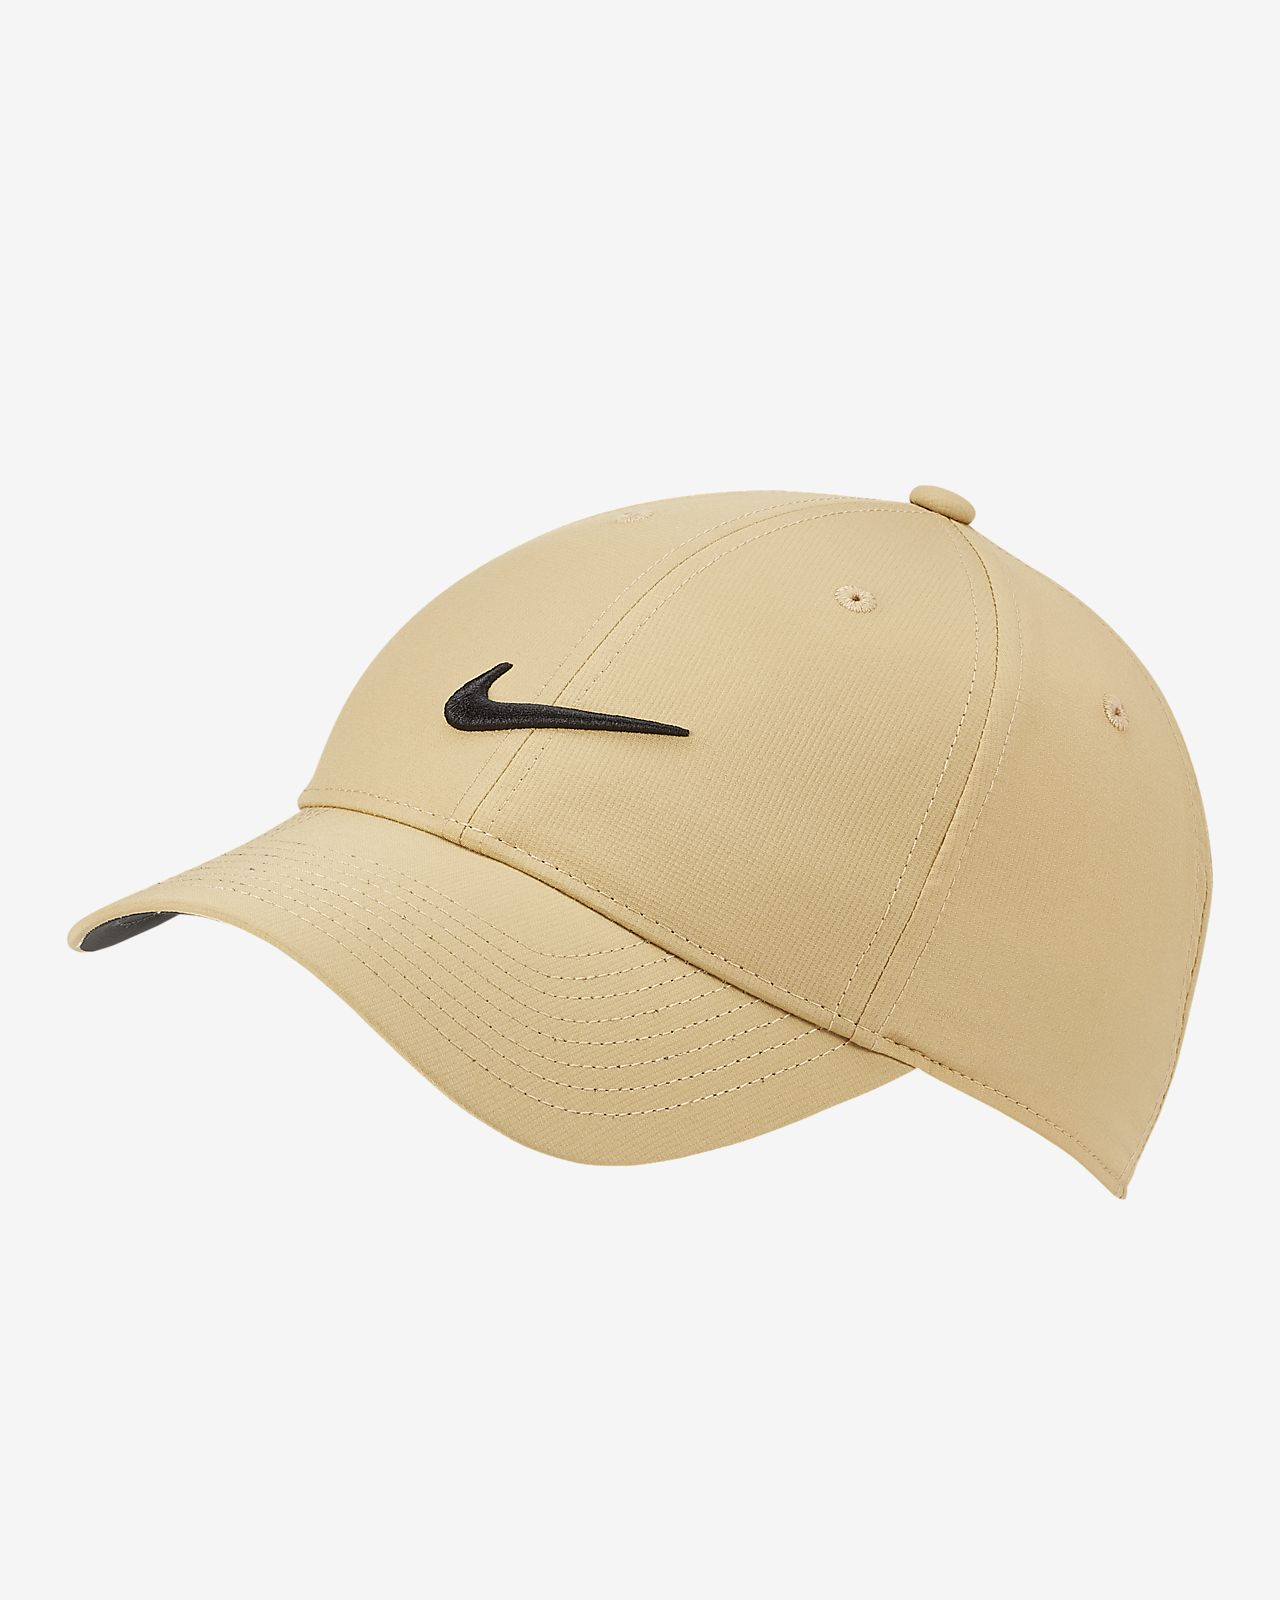 Nike Legacy 91 Adjustable Golf Hat. Nike.com facd454c66a